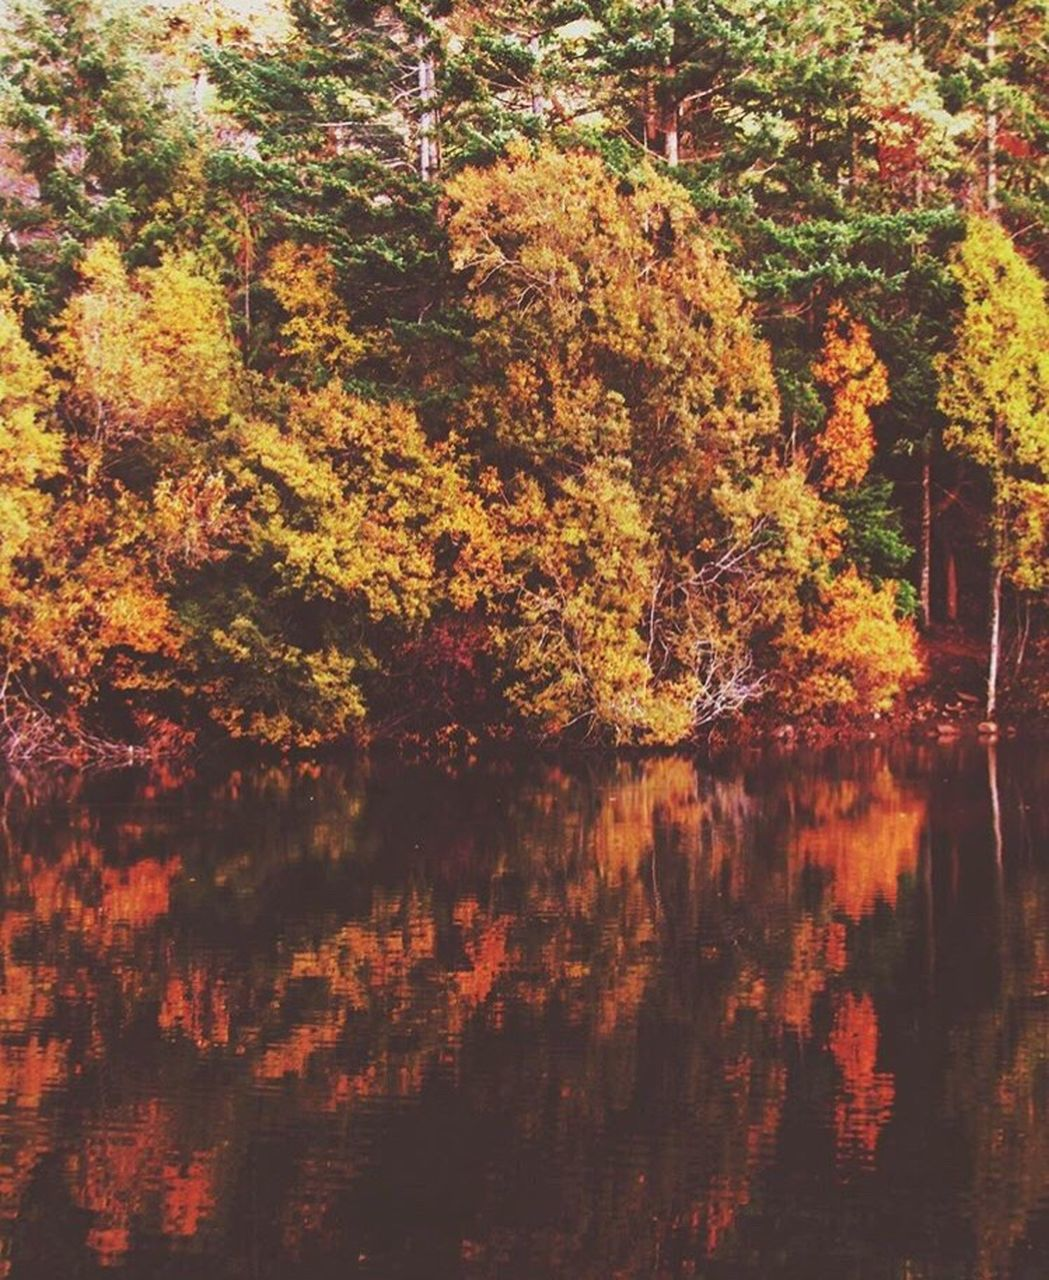 tree, autumn, reflection, nature, beauty in nature, tranquility, tranquil scene, change, water, scenics, outdoors, no people, growth, lake, day, leaf, waterfront, forest, sky